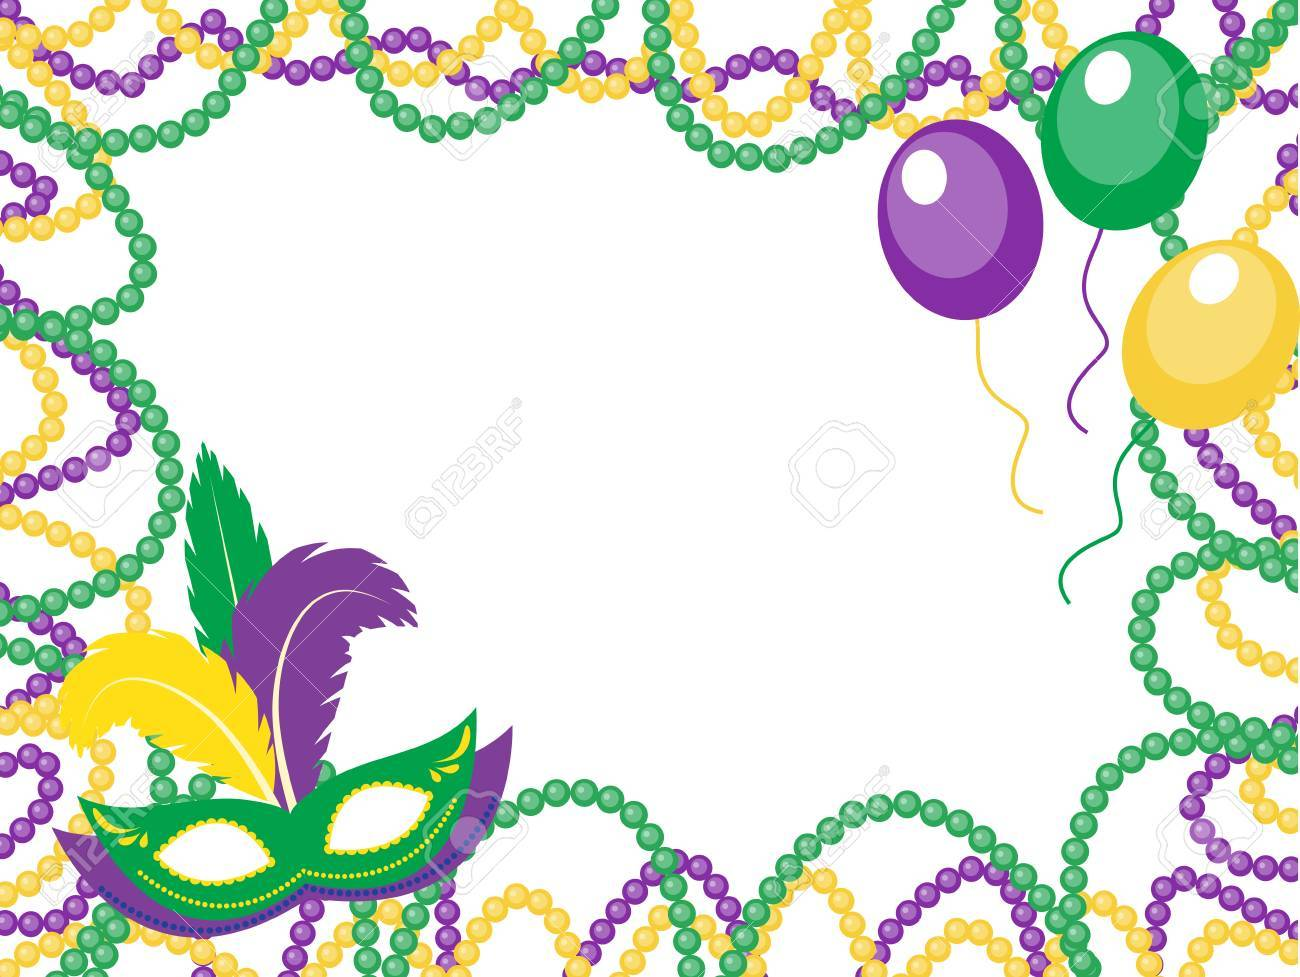 Mardi Gras Beads Colored Frame With A Mask And Balloons, Isolated ...